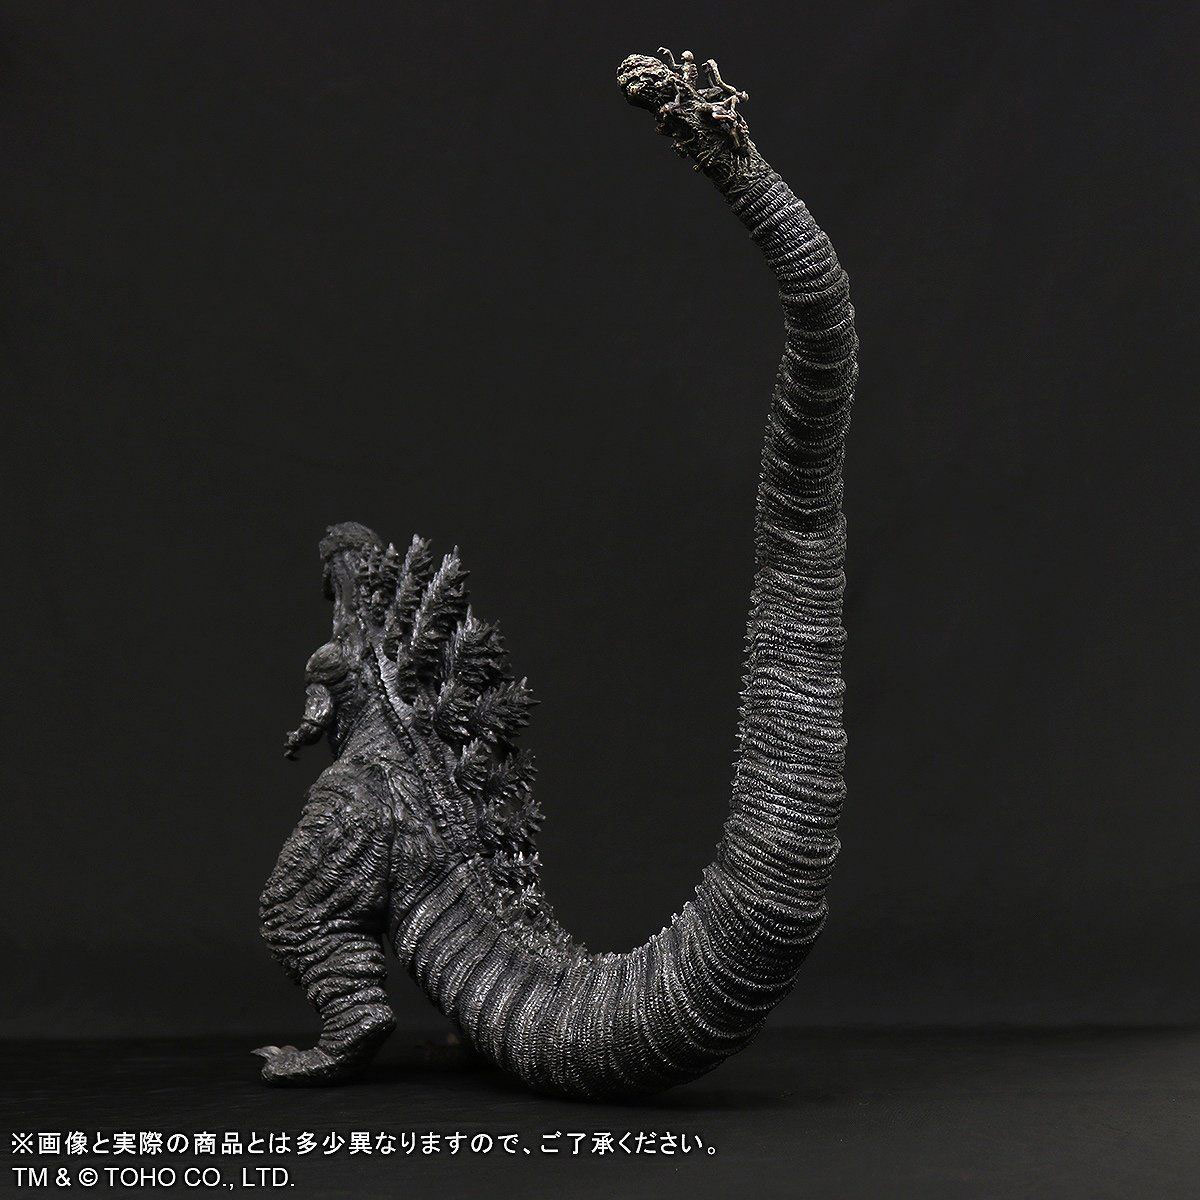 Rear view of the Large Monster Series Godzilla 2016 Frozen Version vinyl figure by X-Plus.